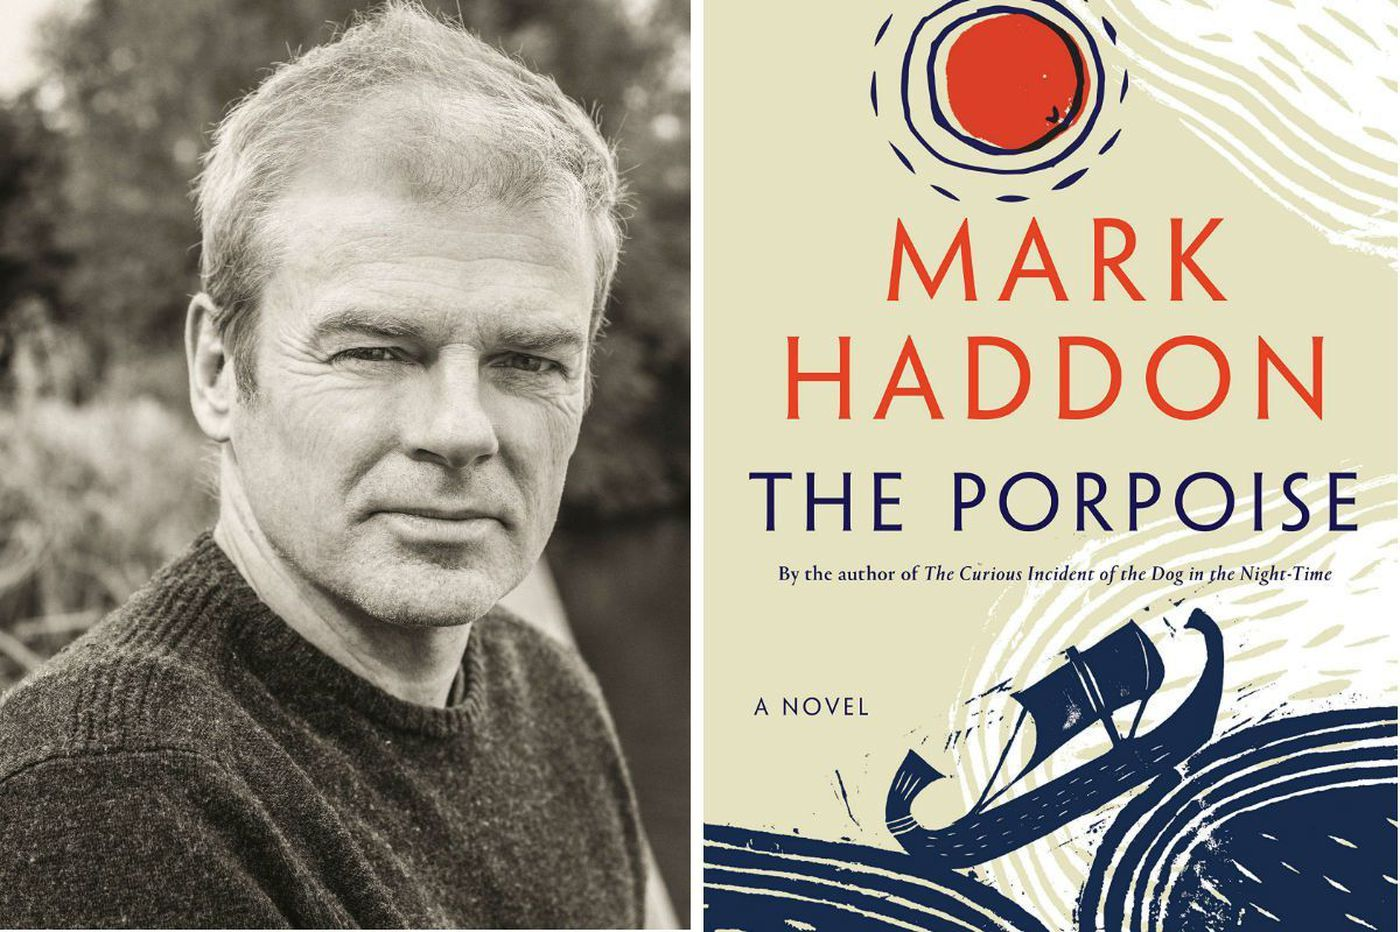 Mark Haddon's 'The Porpoise': Thrilling, electrifying tale from the author of 'The Curious Incident of the Dog in the Night-Time'